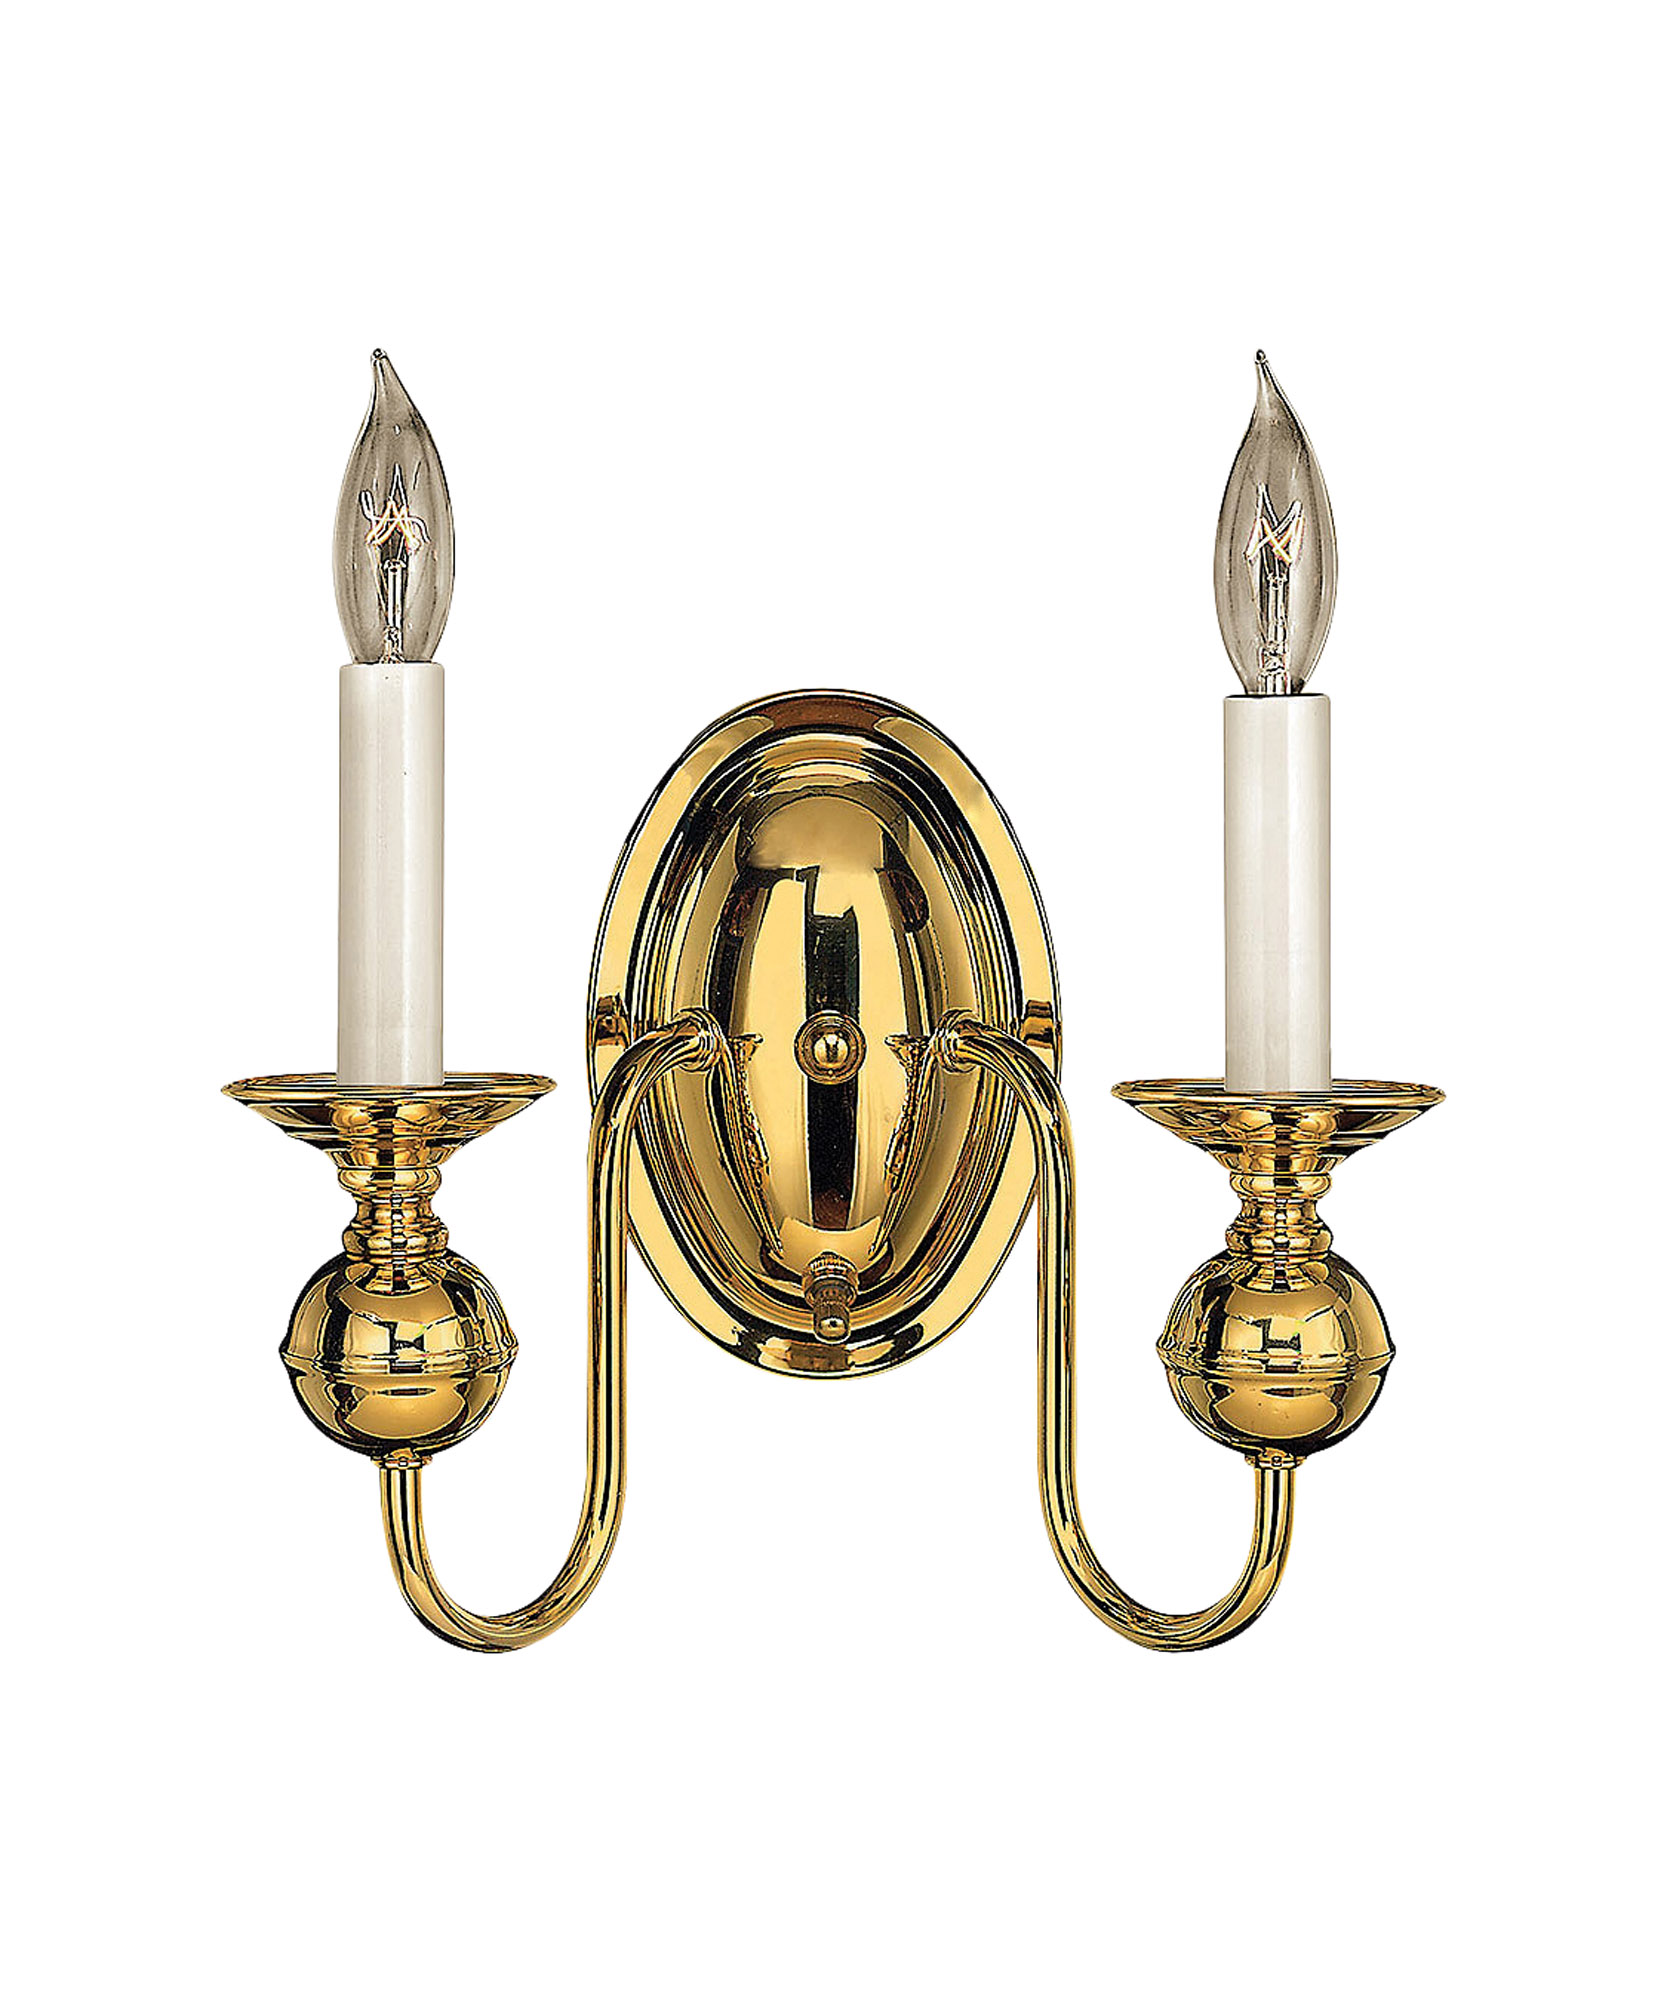 House of Antique Hardware Candle Sconce